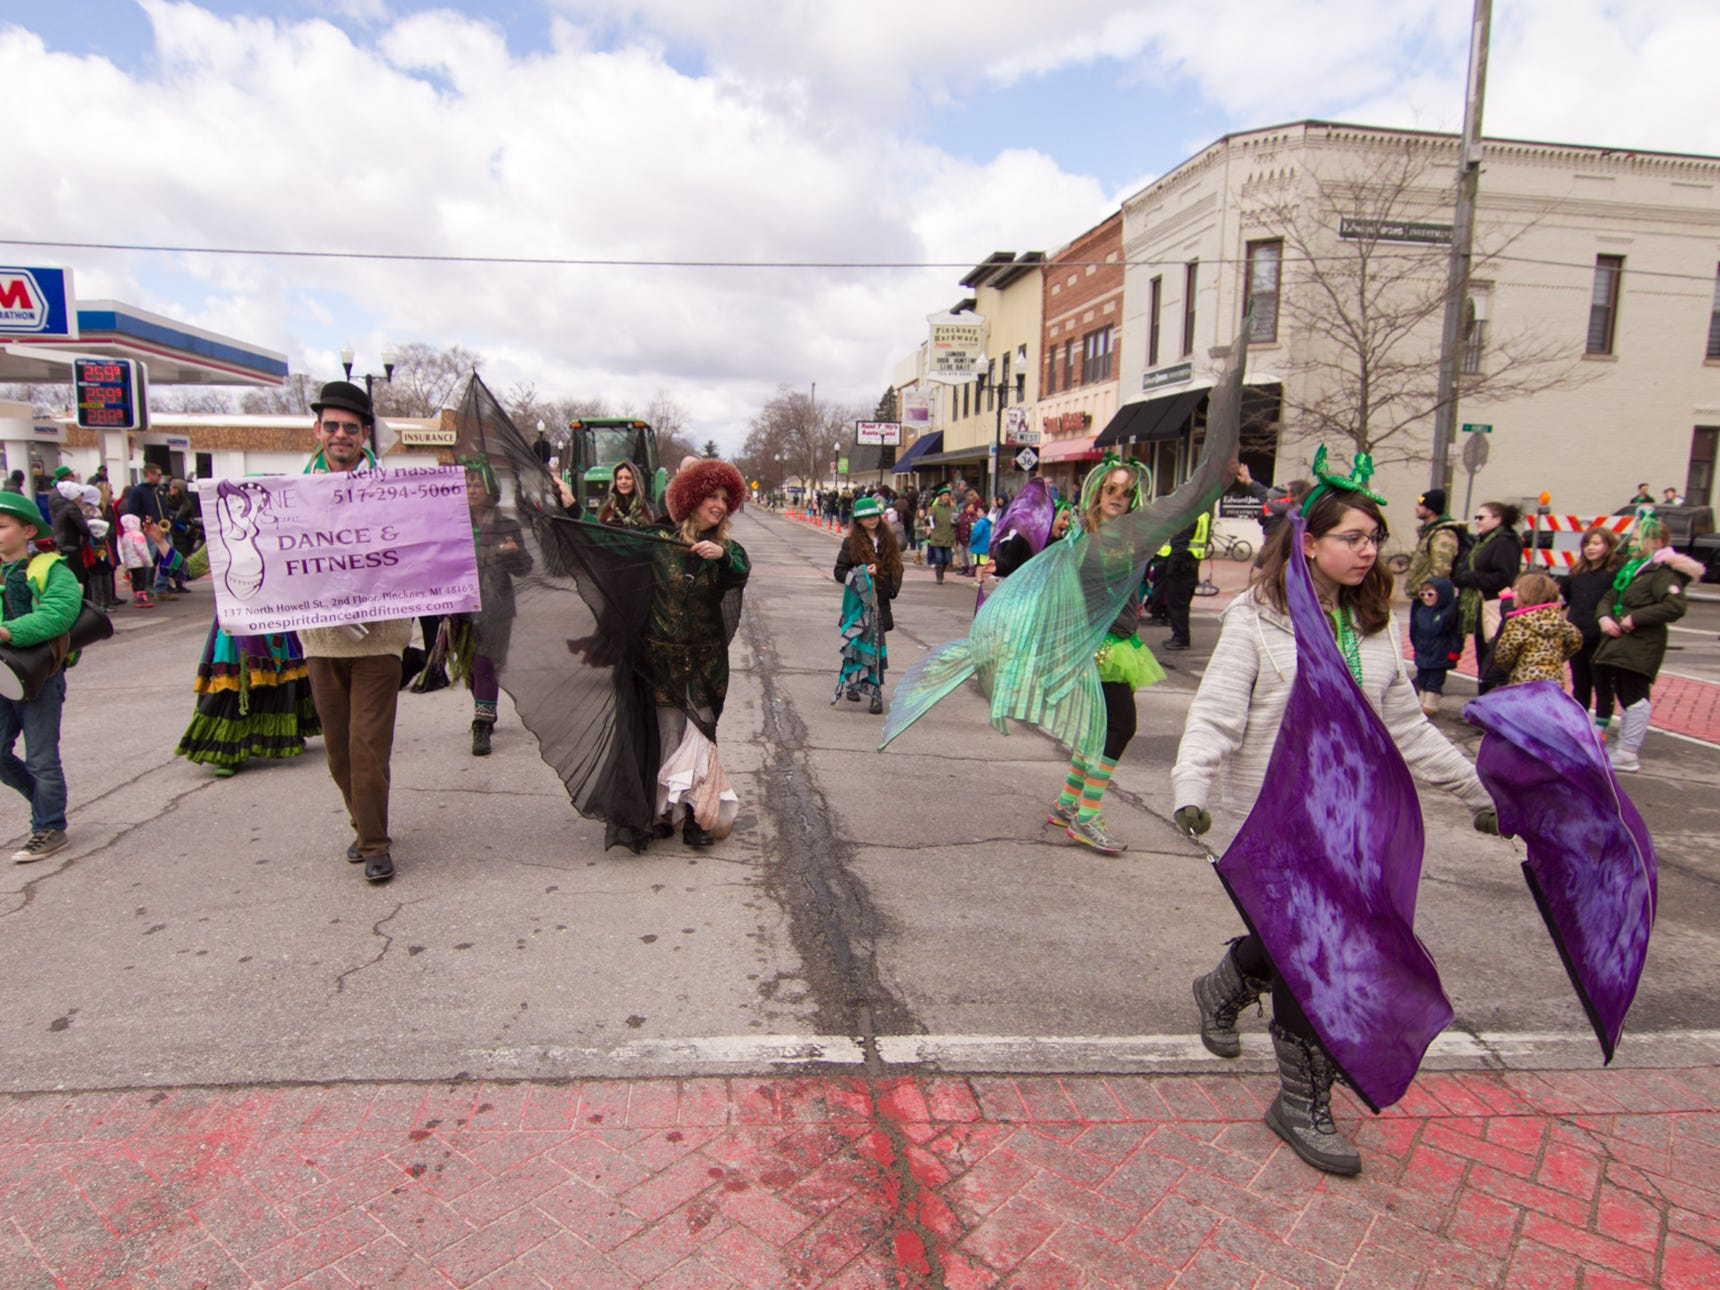 One Spirit Dance and Fitness walks in the St. Patrick's Day parade Saturday, March 16, 2019.